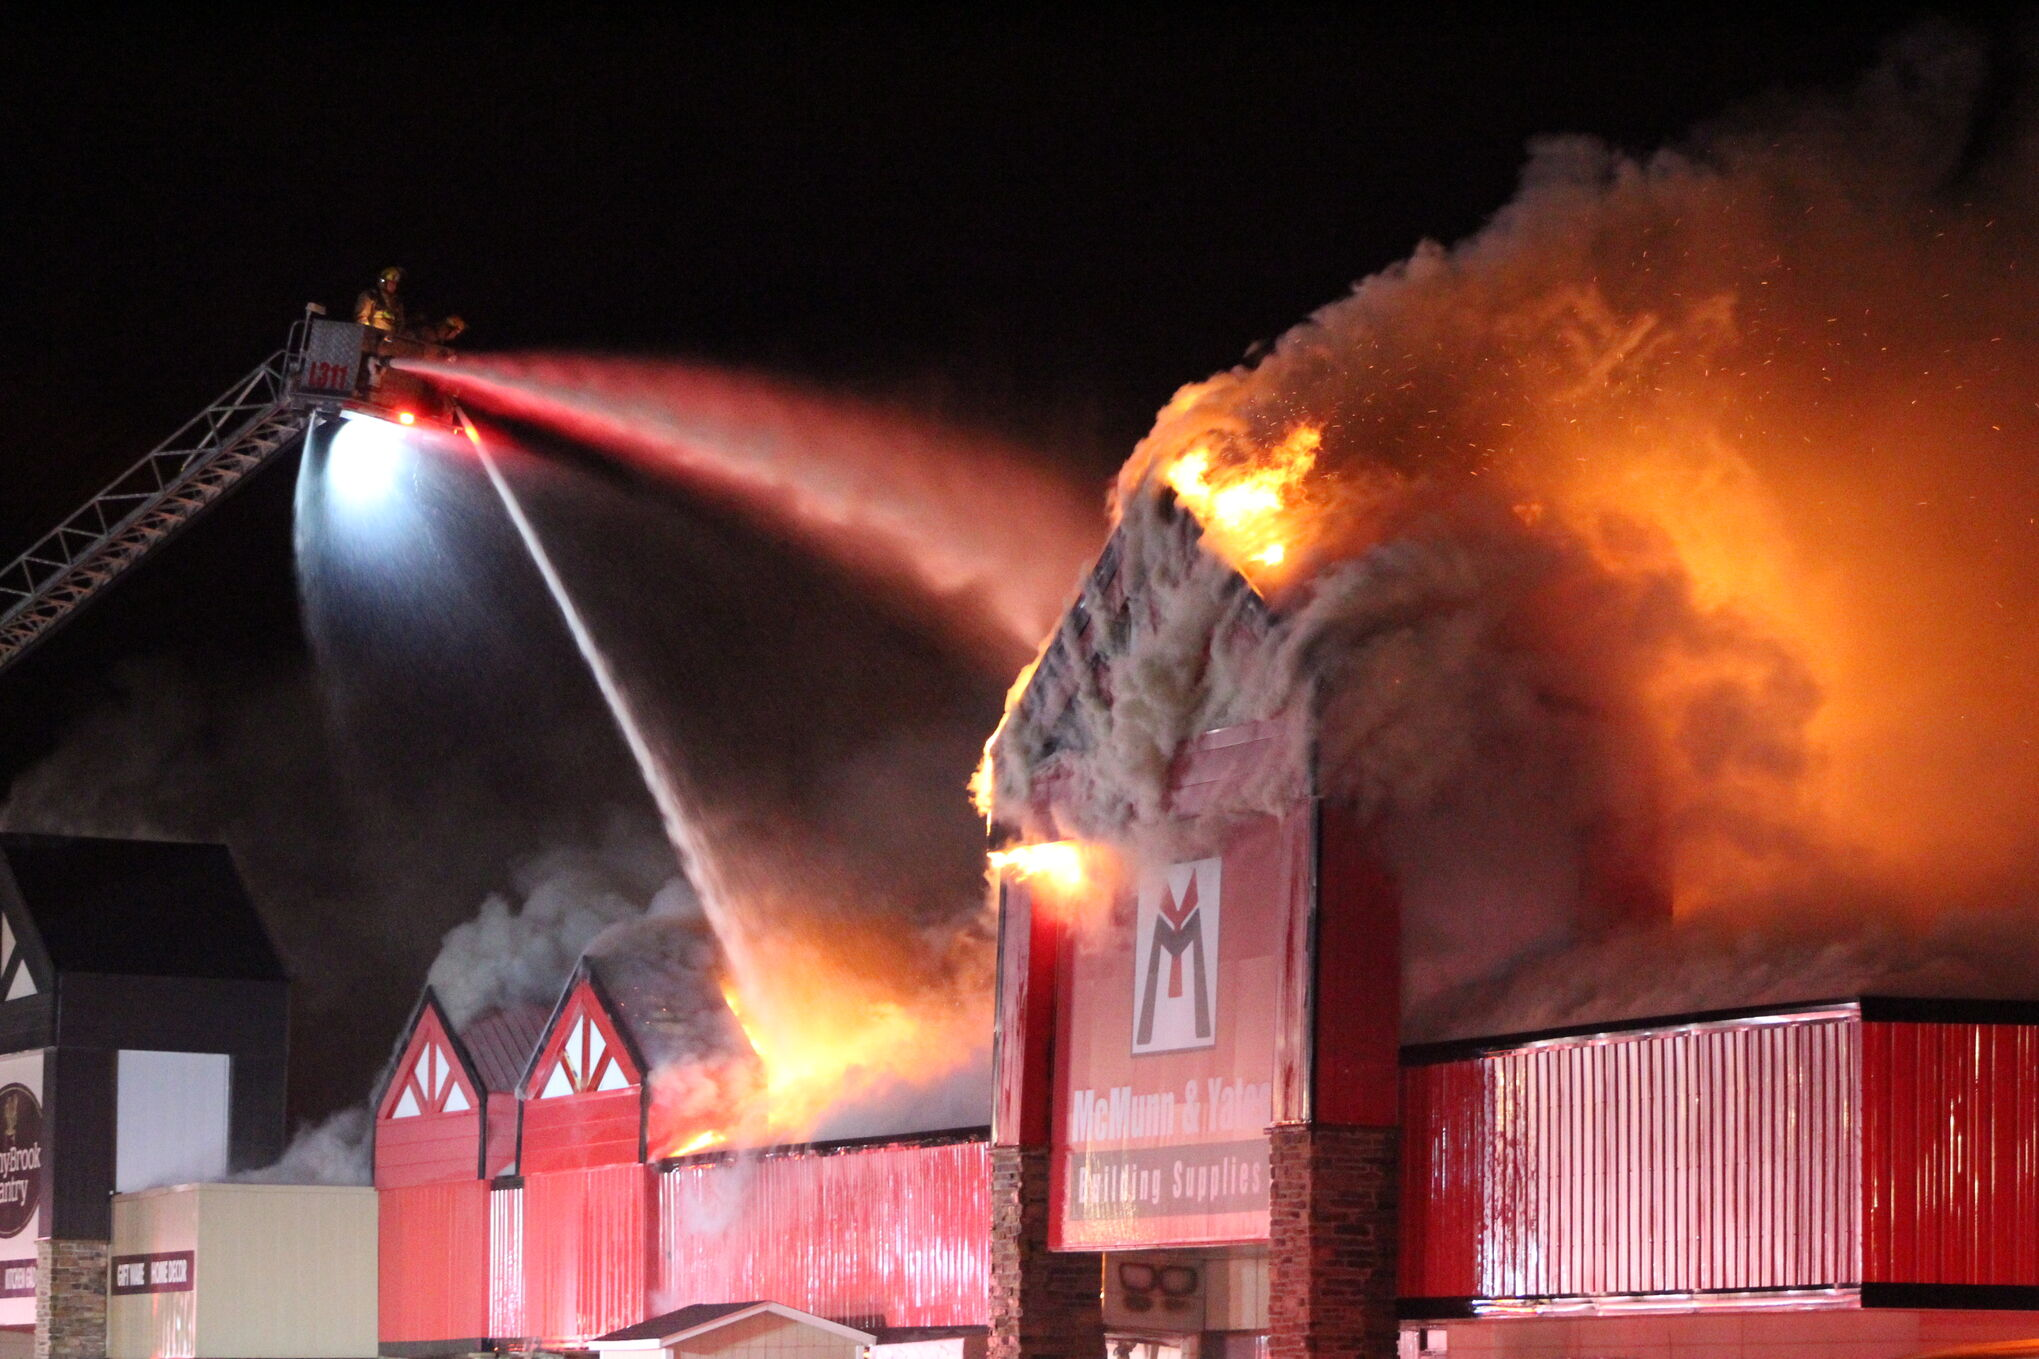 Firefighters douse flames from atop an aerial ladder.